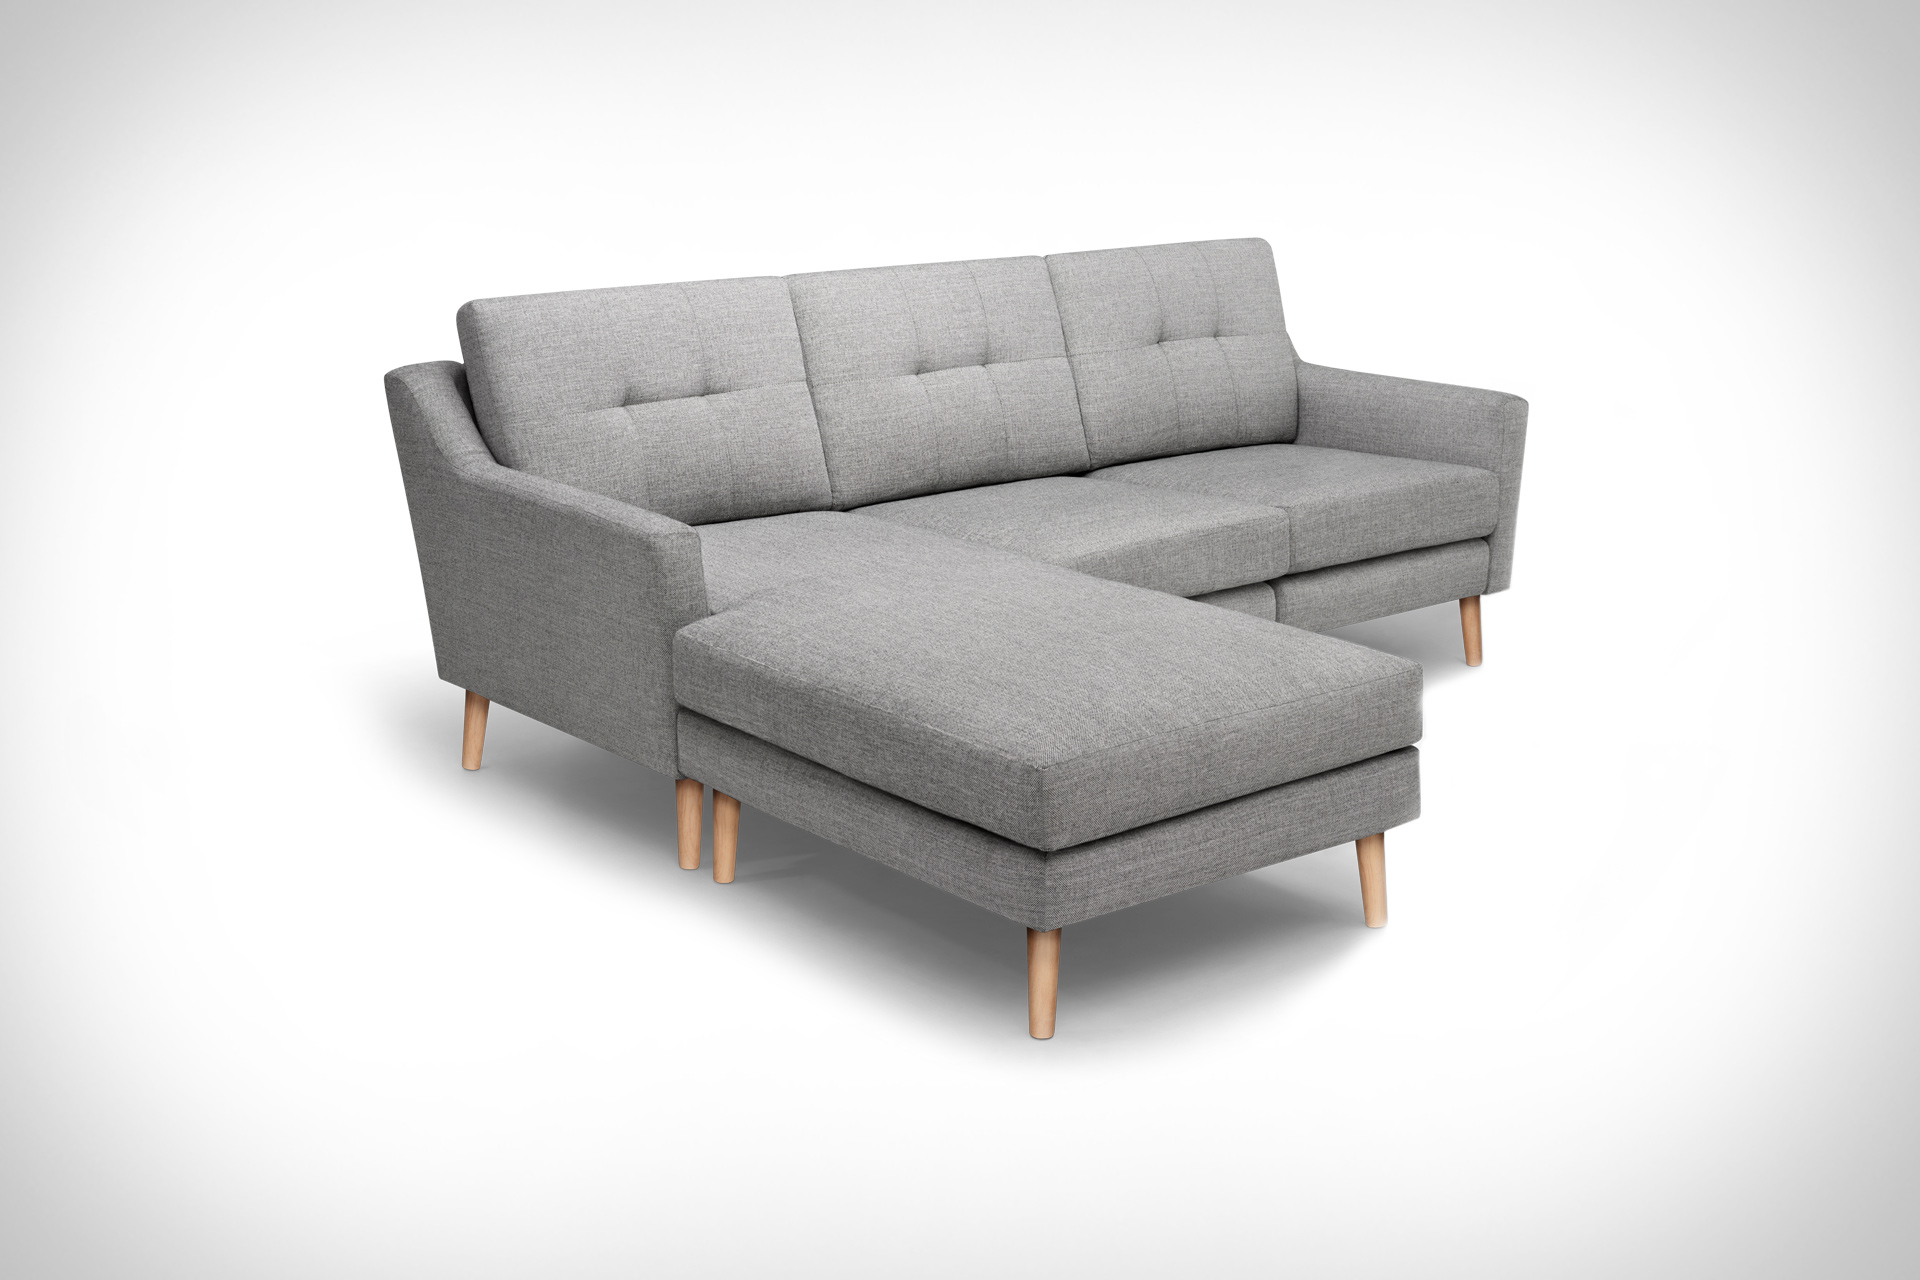 Cheap Modular Lounges Burrow Modular Sofa Uncrate